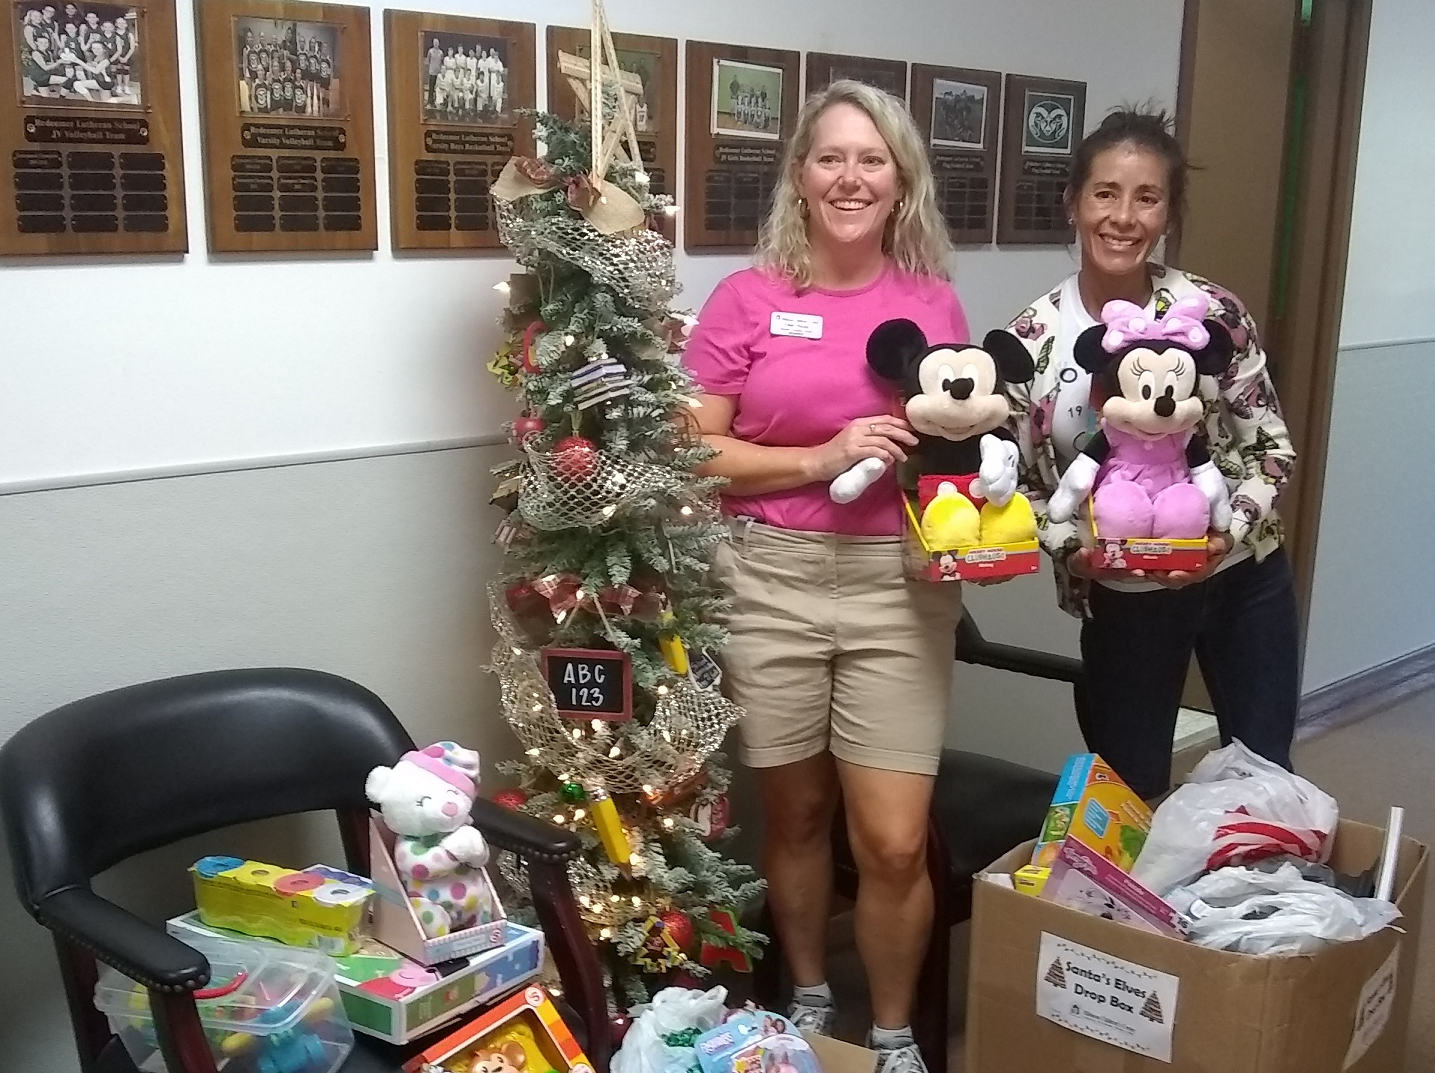 The kindergarten and first grade classes of Redeemer Lutheran School donated lots of wonderful toys for the Jensen Beach Shelter. Santa's Elves Chair Ellen Houts, left, was delighted to receive the gifts from Angie Jones at Redeemer.